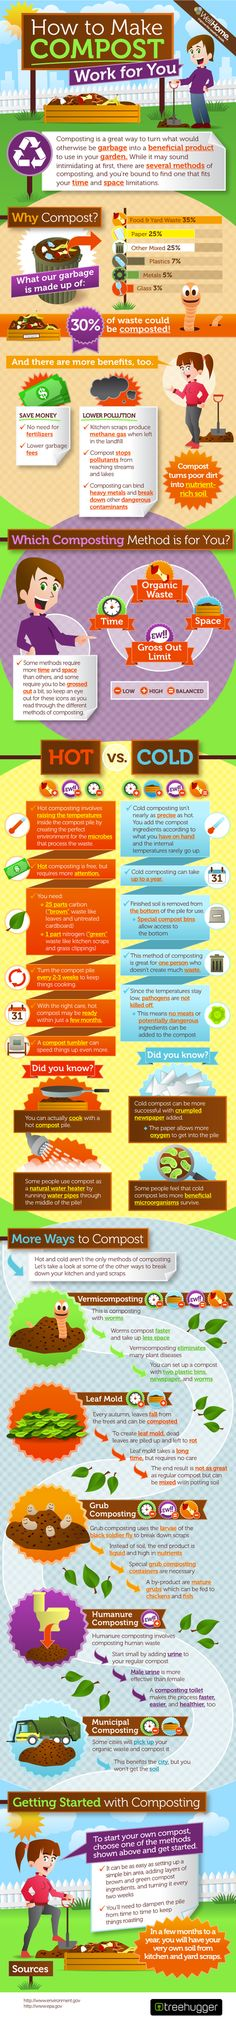 For information on how to make compost work for you check out this cool #infographic from WellHome.